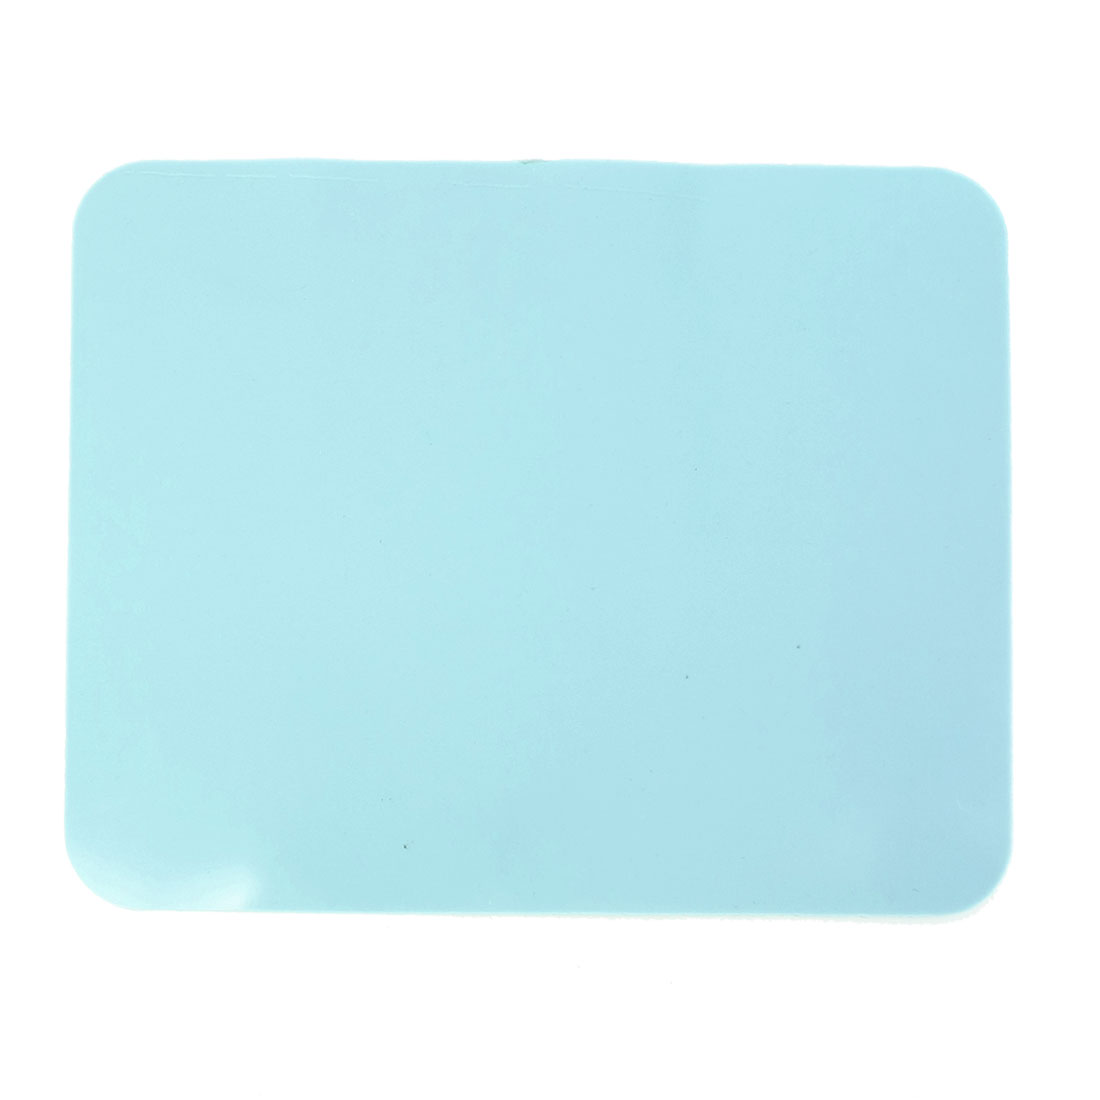 Soft Silicone Anti-skid Mouse Pad Mat Cyan for Notebook Computer